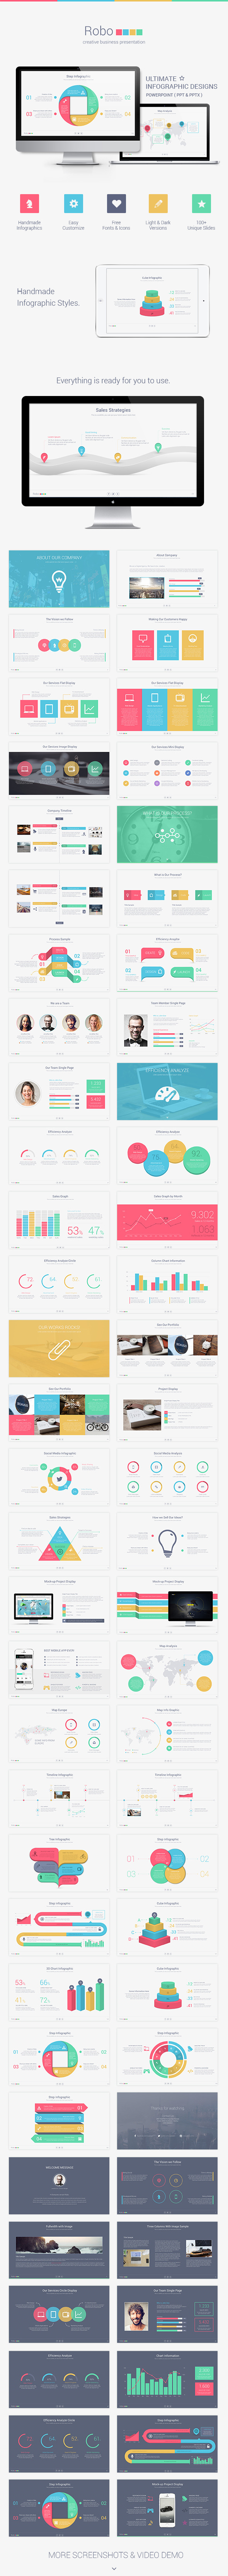 Robo powerpoint presentation template by vigitalart graphicriver robo powerpoint presentation template business powerpoint templates toneelgroepblik Image collections